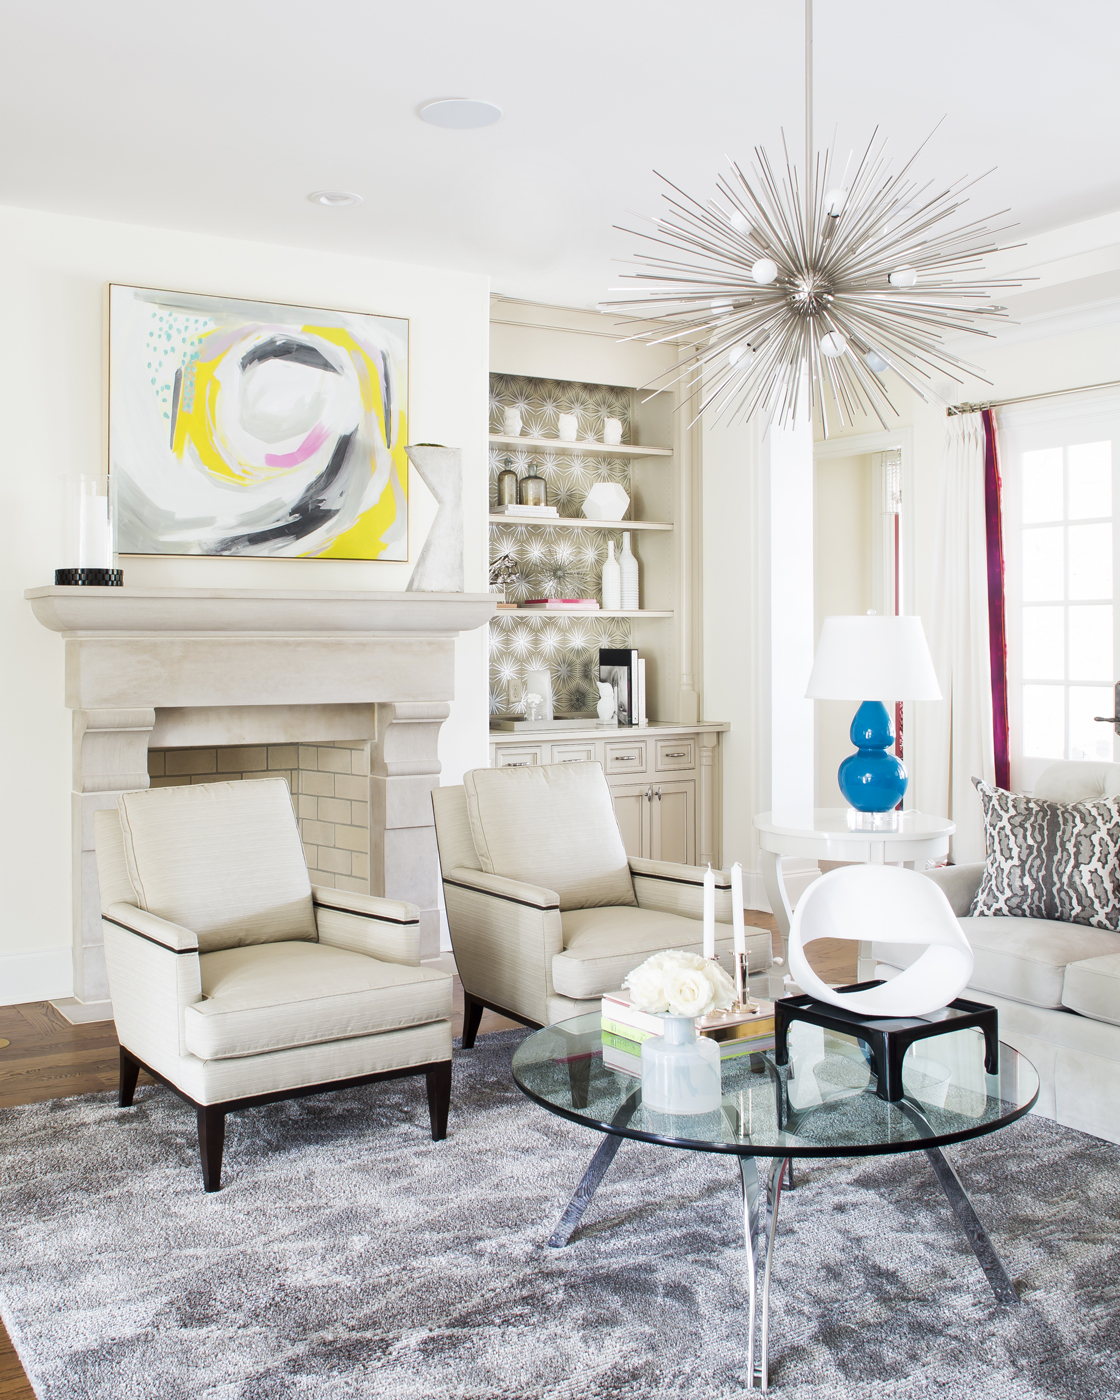 White and cream living room; red & turquoise accents; Roger Sprunger for Dunbar table; Kelly Wearstler chandelier | Savage Interior Design